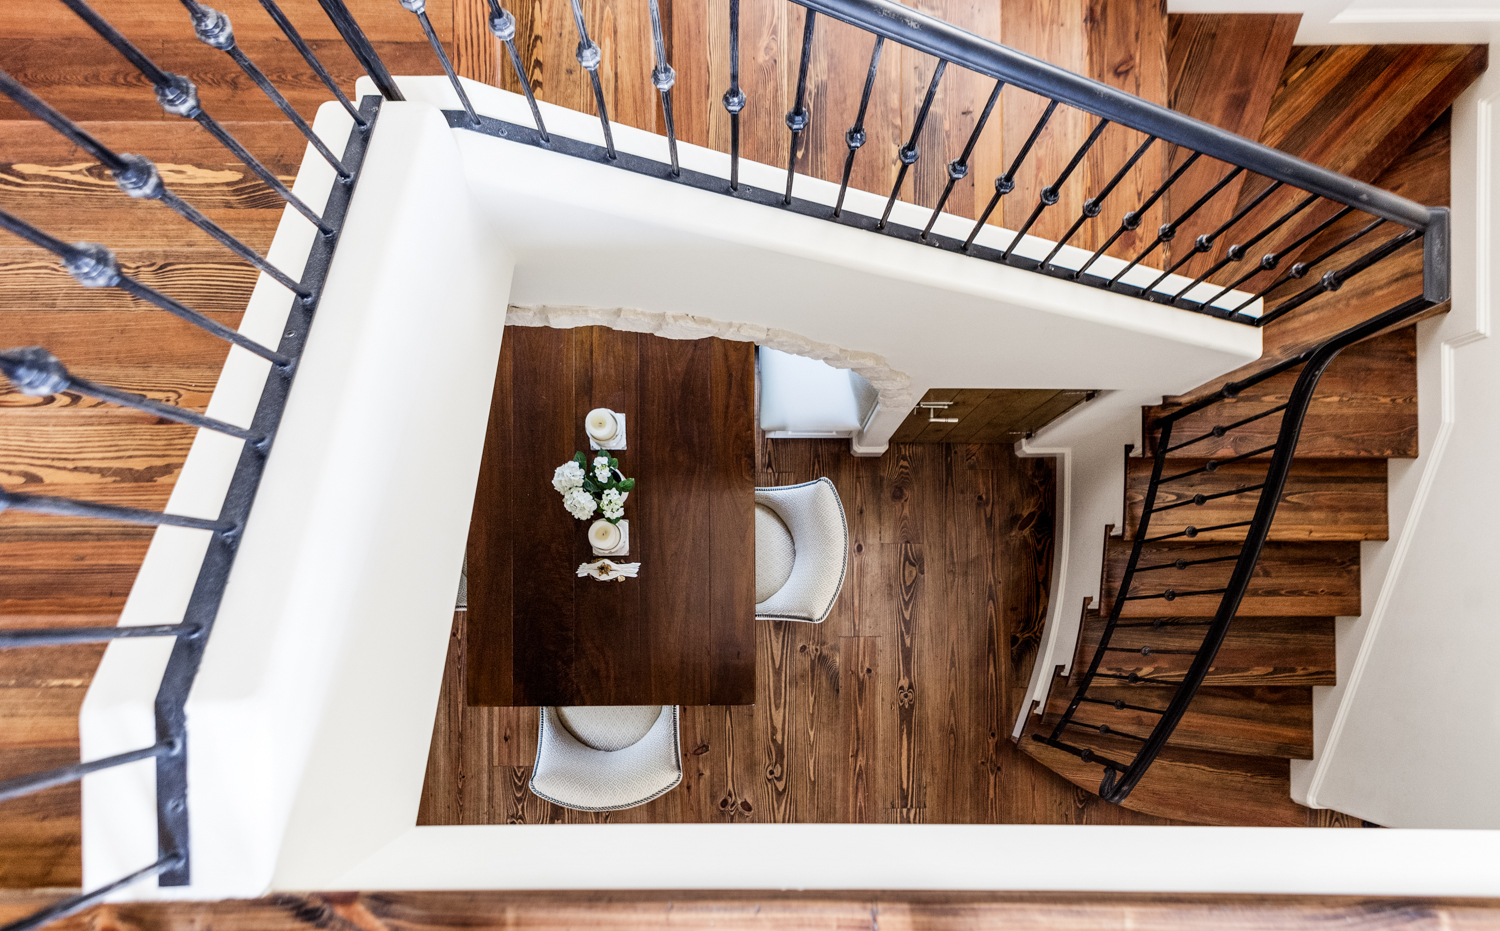 A vertical view down to the first floor reveals an expanse of rich natural wood tones on the stairs, contrasting sharply with white walls and wrought iron railing.